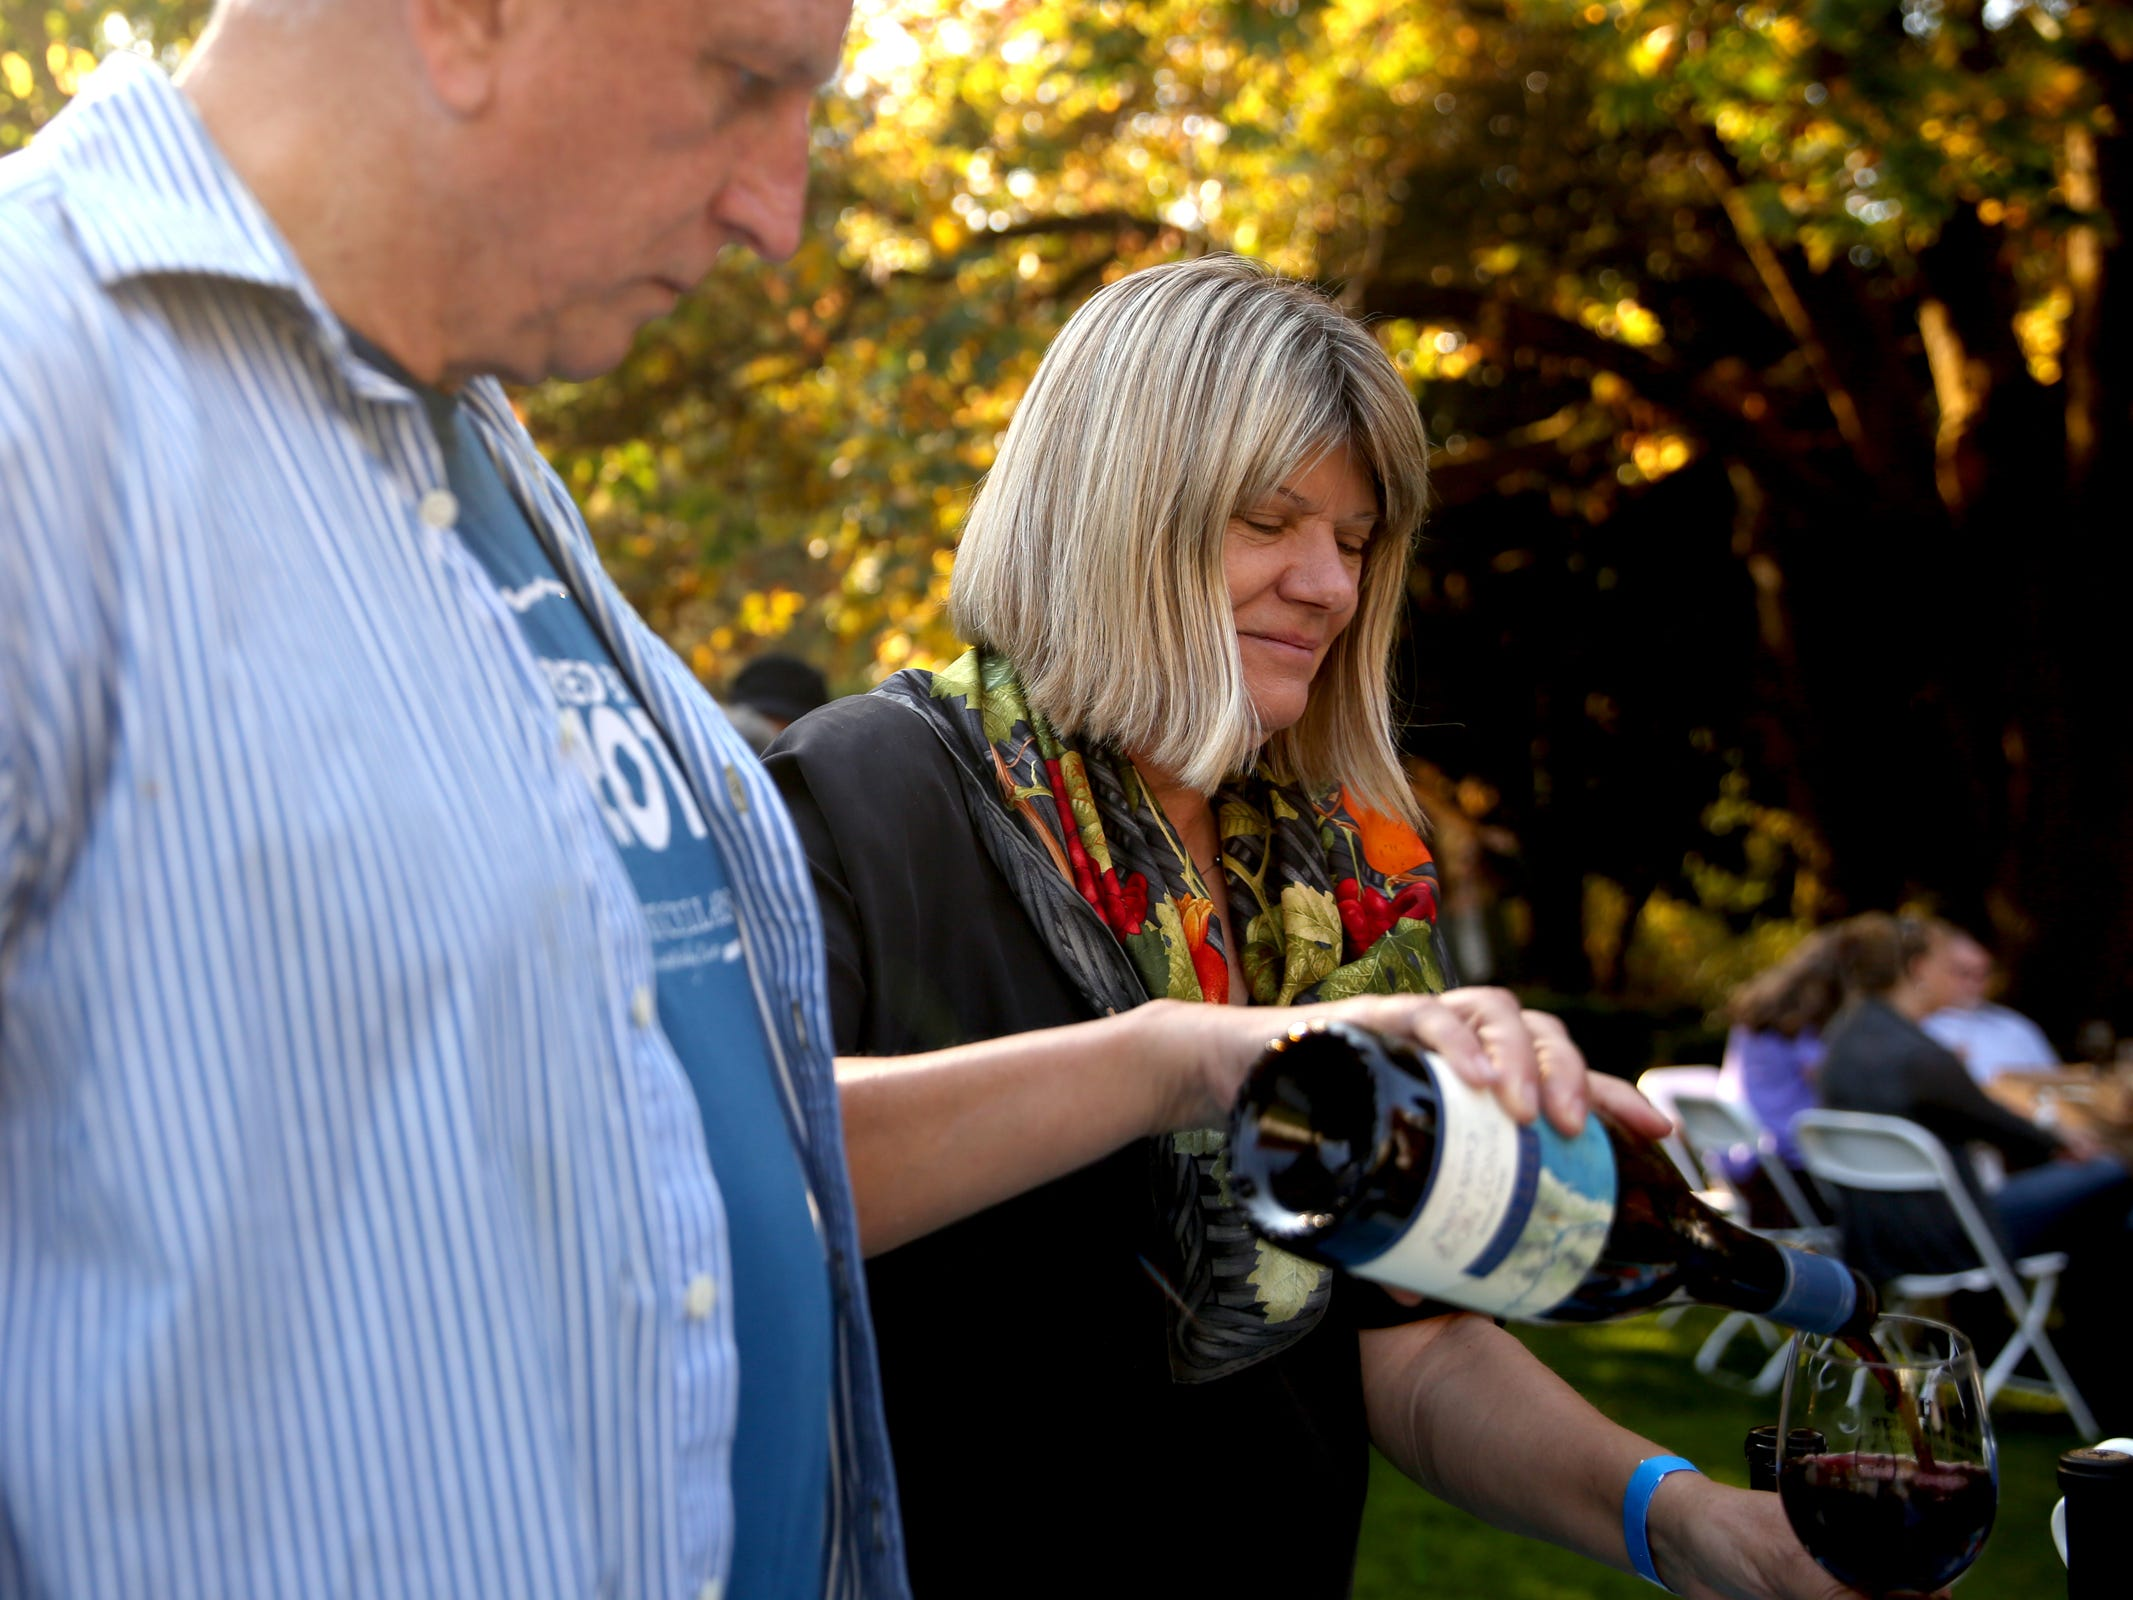 Suzanne Larson and her husband Bob Pfaff, the founders of Left Coast Estate, pour a wine tasting during the Wine & Jazz Festival at Deepwood Museum & Gardens in Salem on Sunday, Oct. 21, 2018.